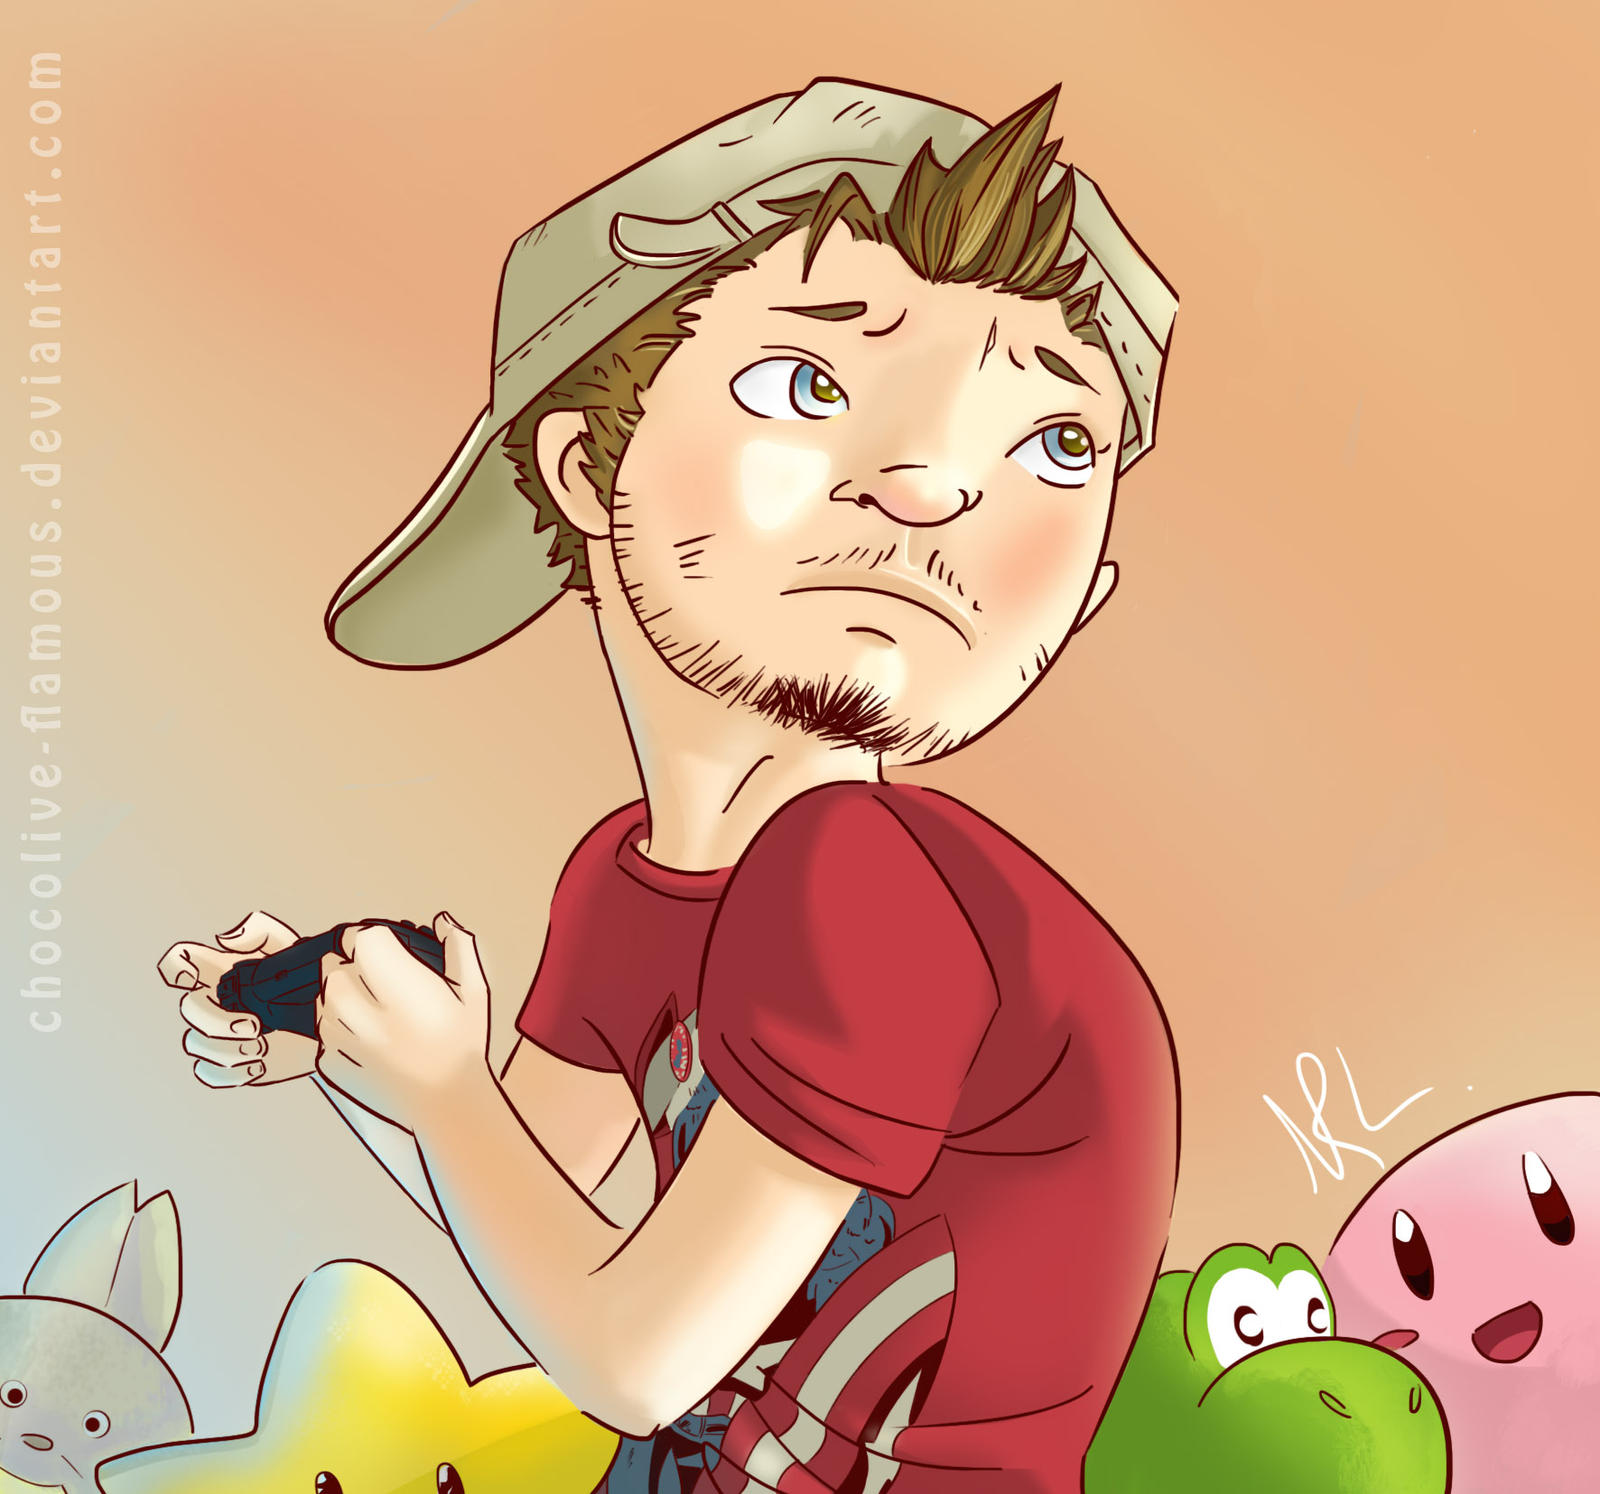 SLG: le Geek by ChocOlive-Flamous